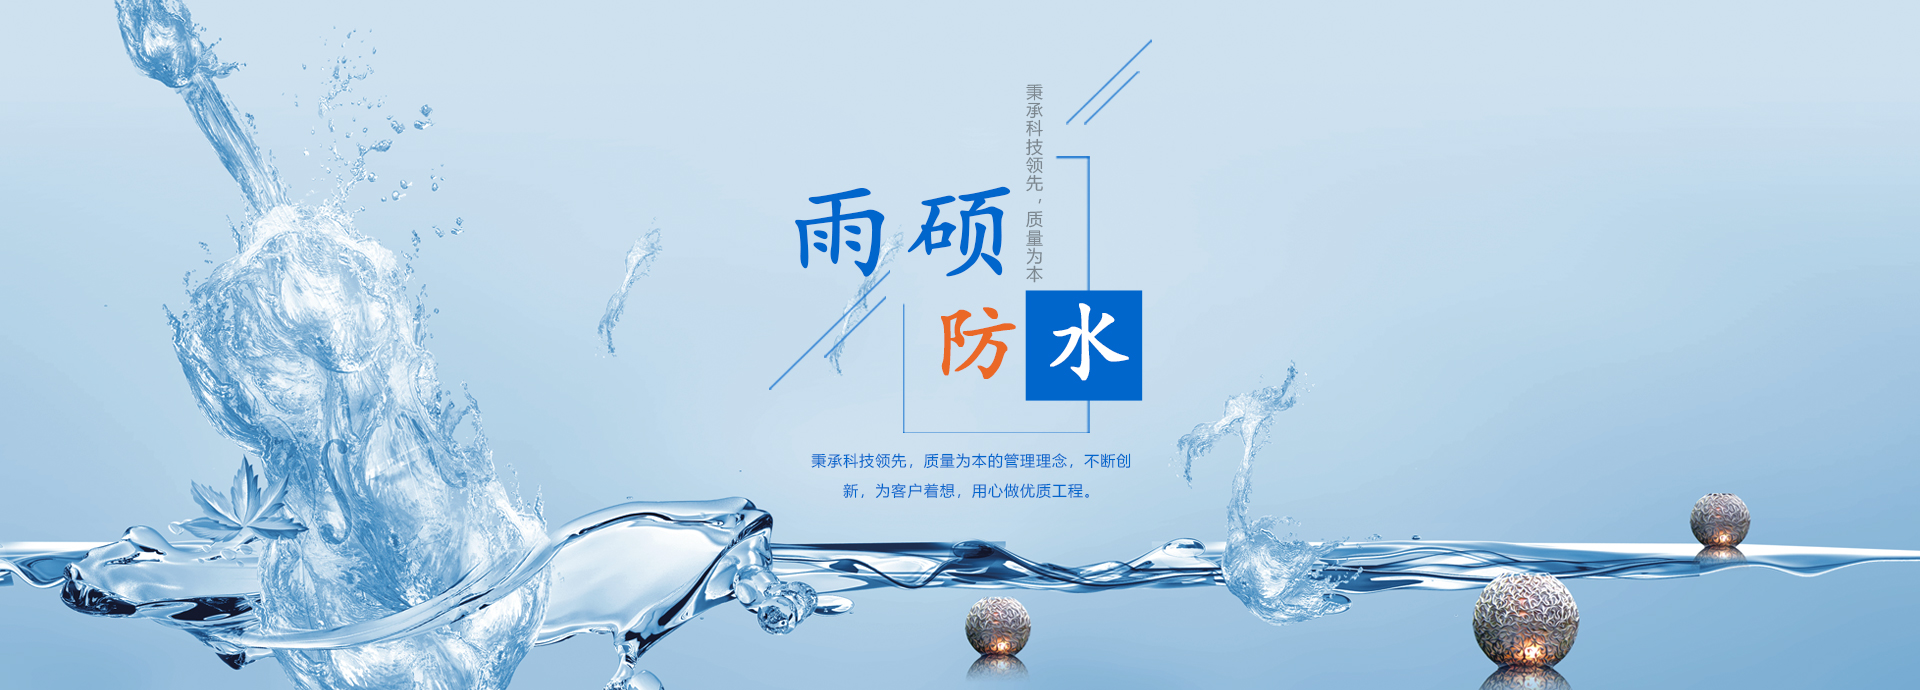 http://www.nnysfs.cn/data/upload/202001/20200107164649_628.jpg